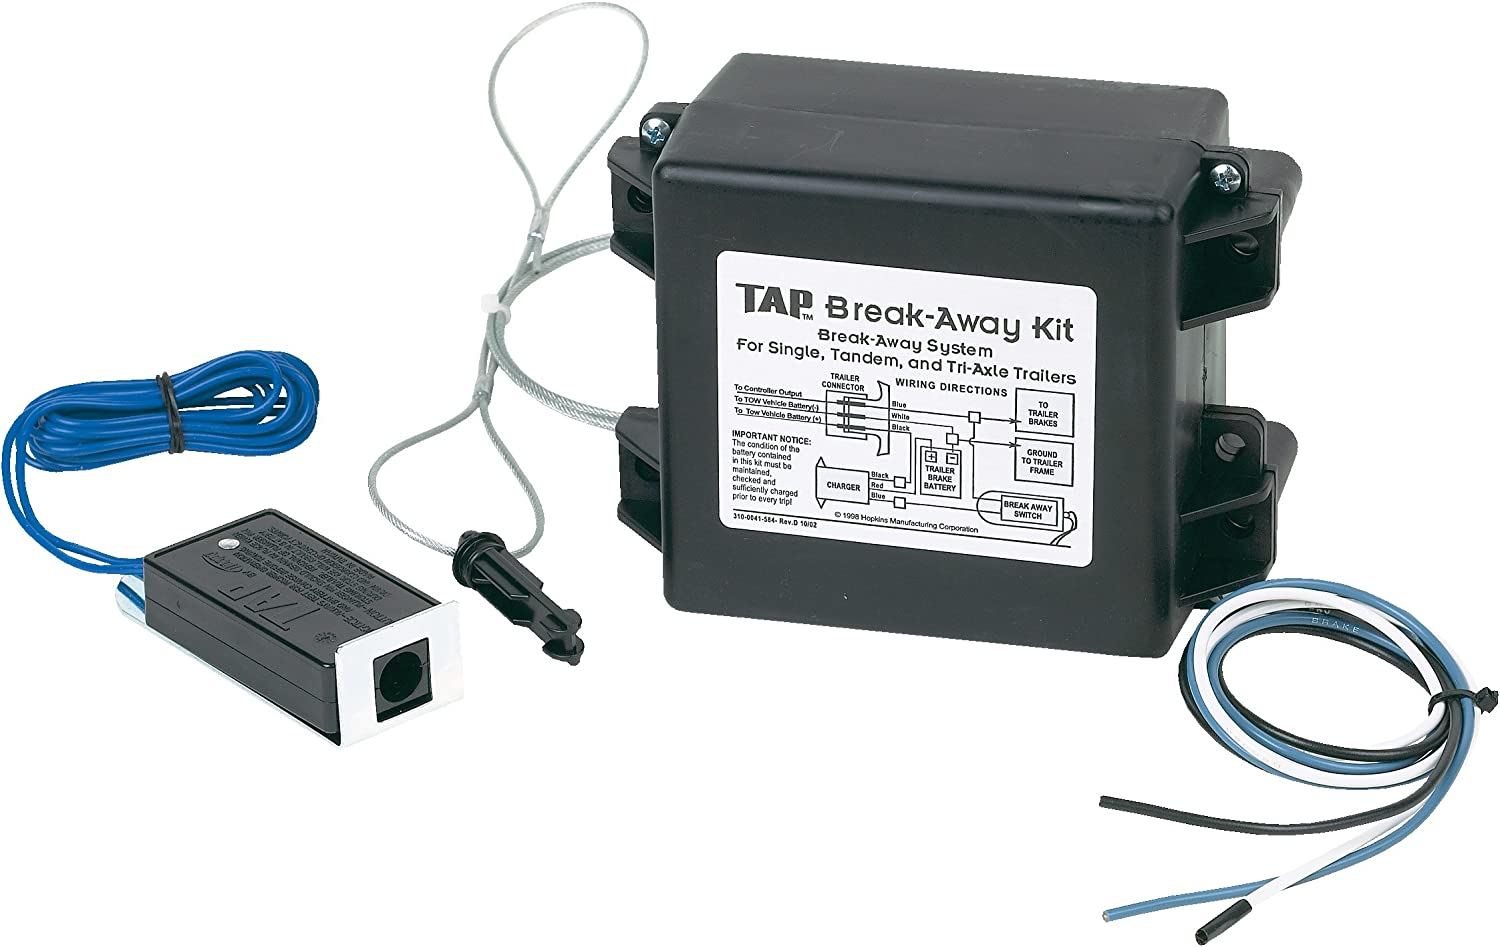 Break Away Trailer Breakaway Switch Wiring Diagram from images-na.ssl-images-amazon.com